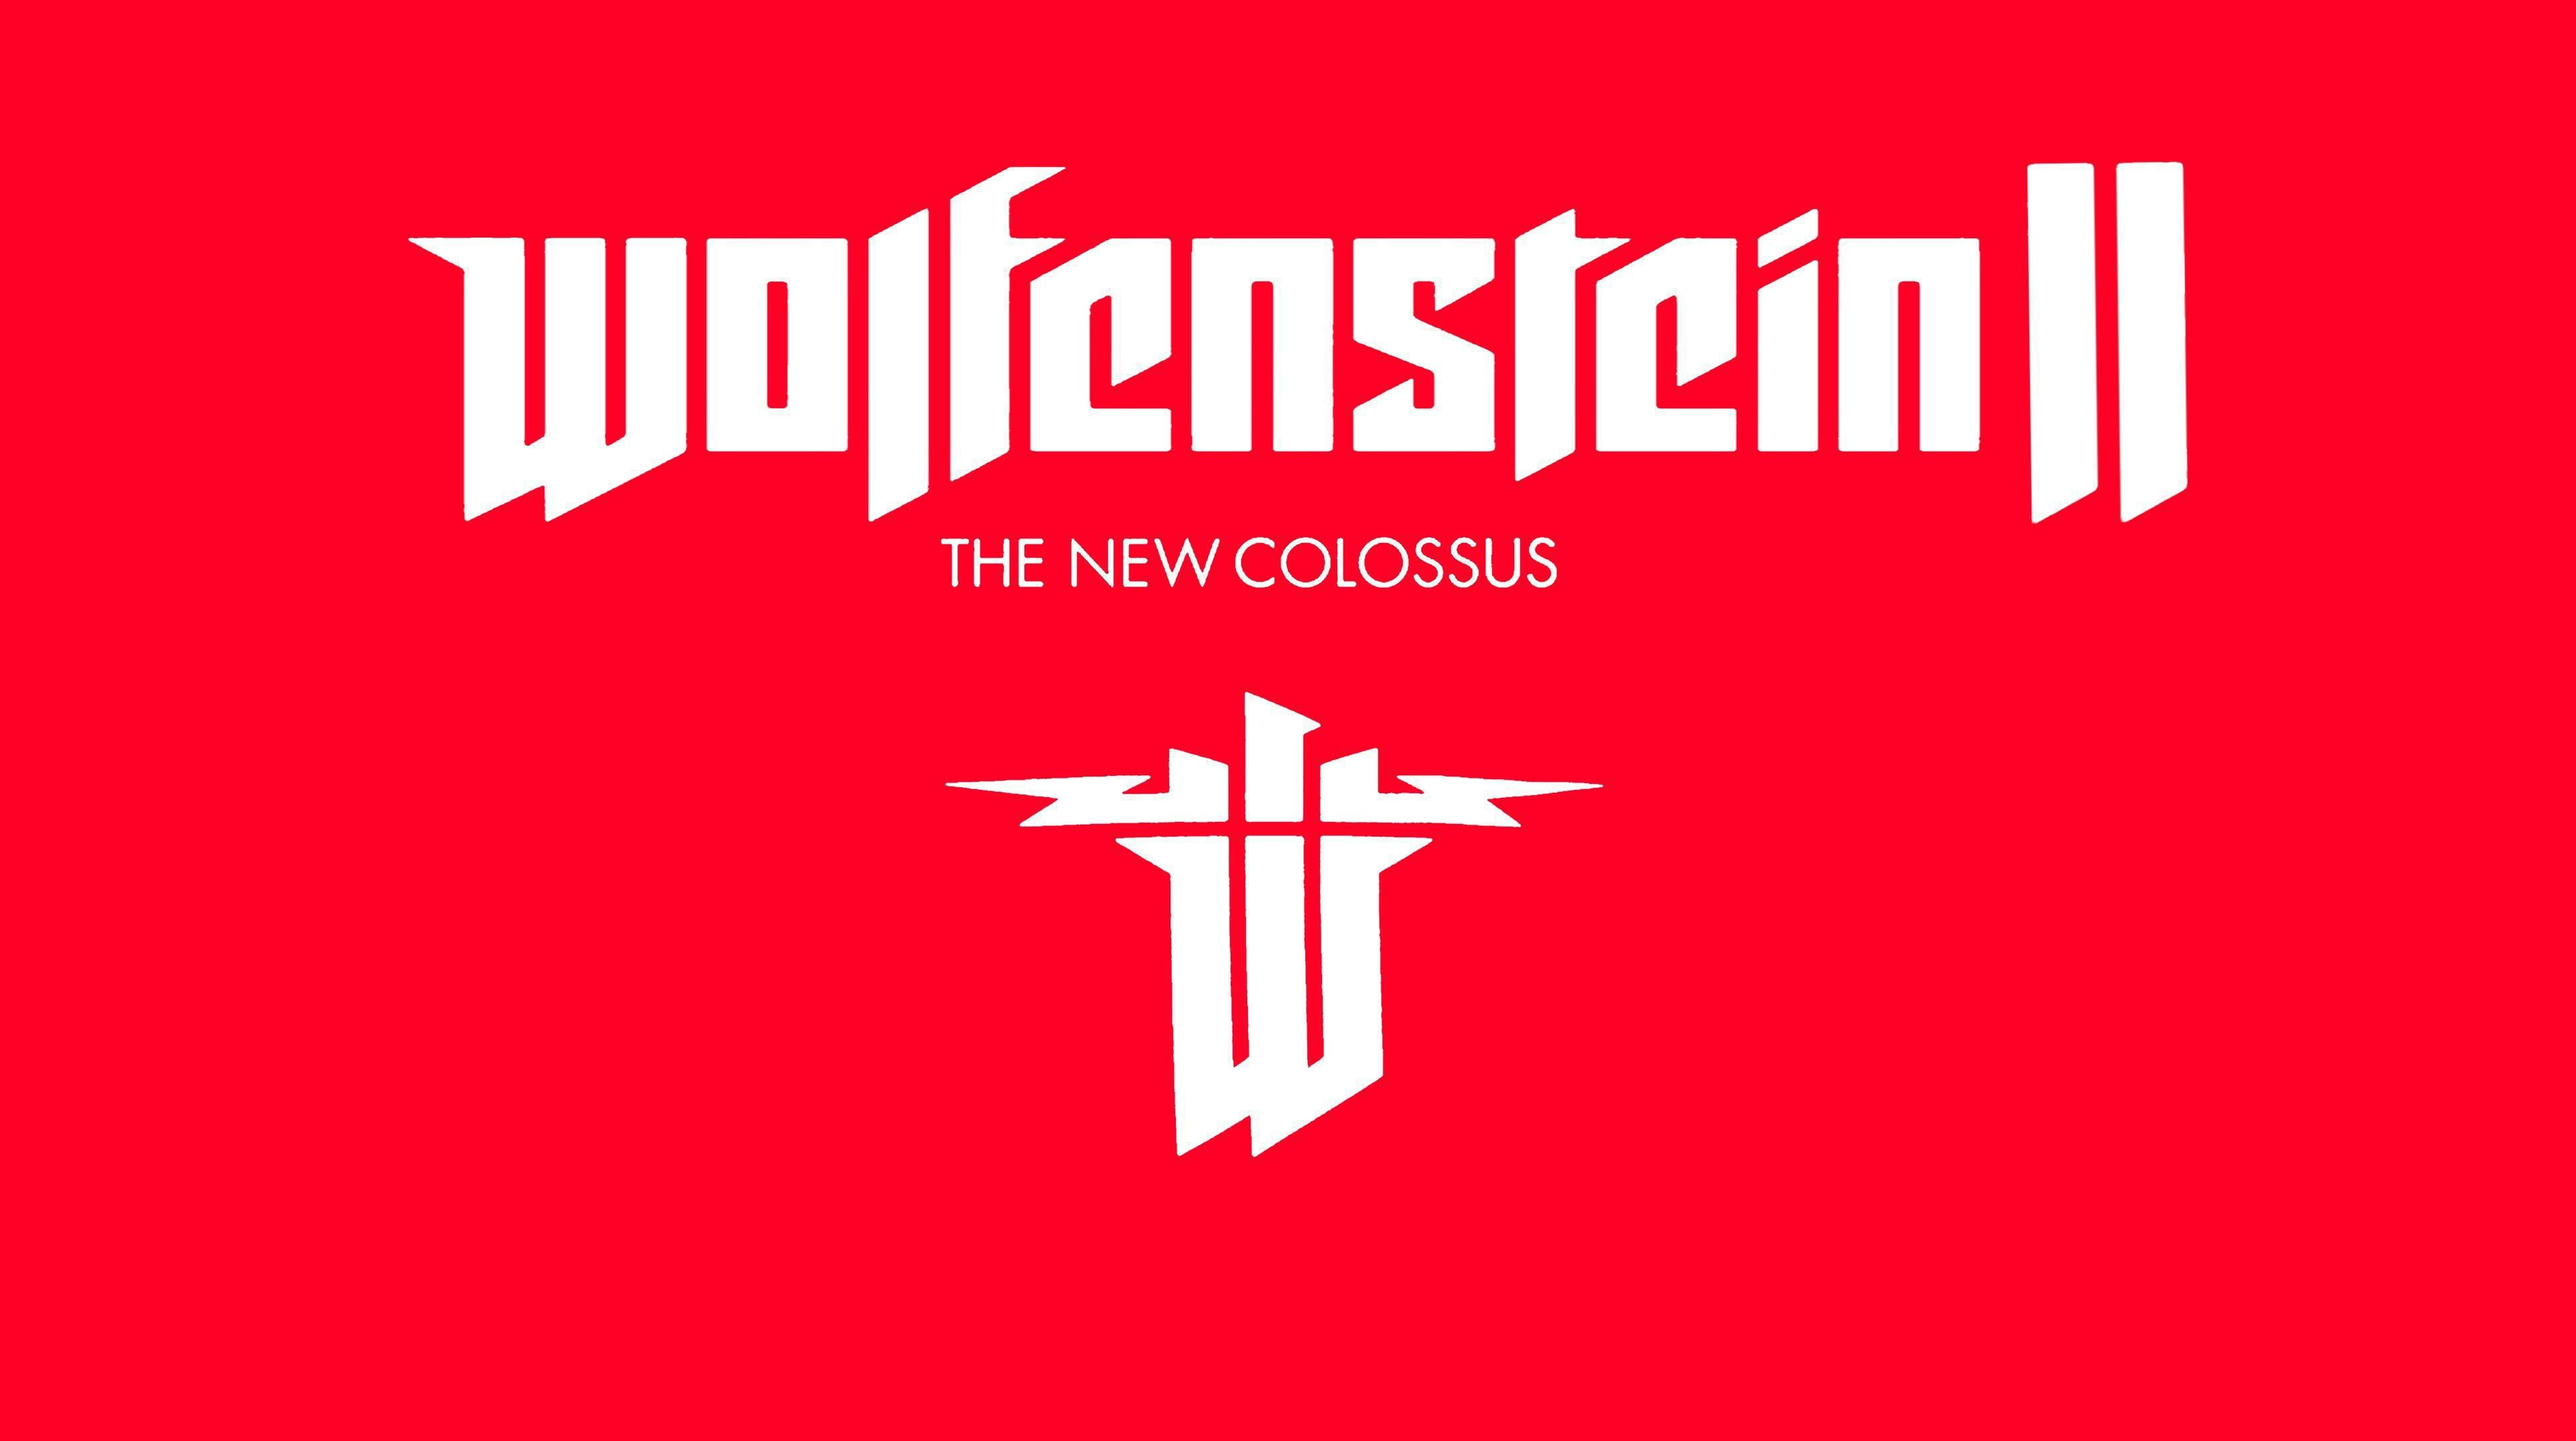 Wolfenstein 2 The New Colossus